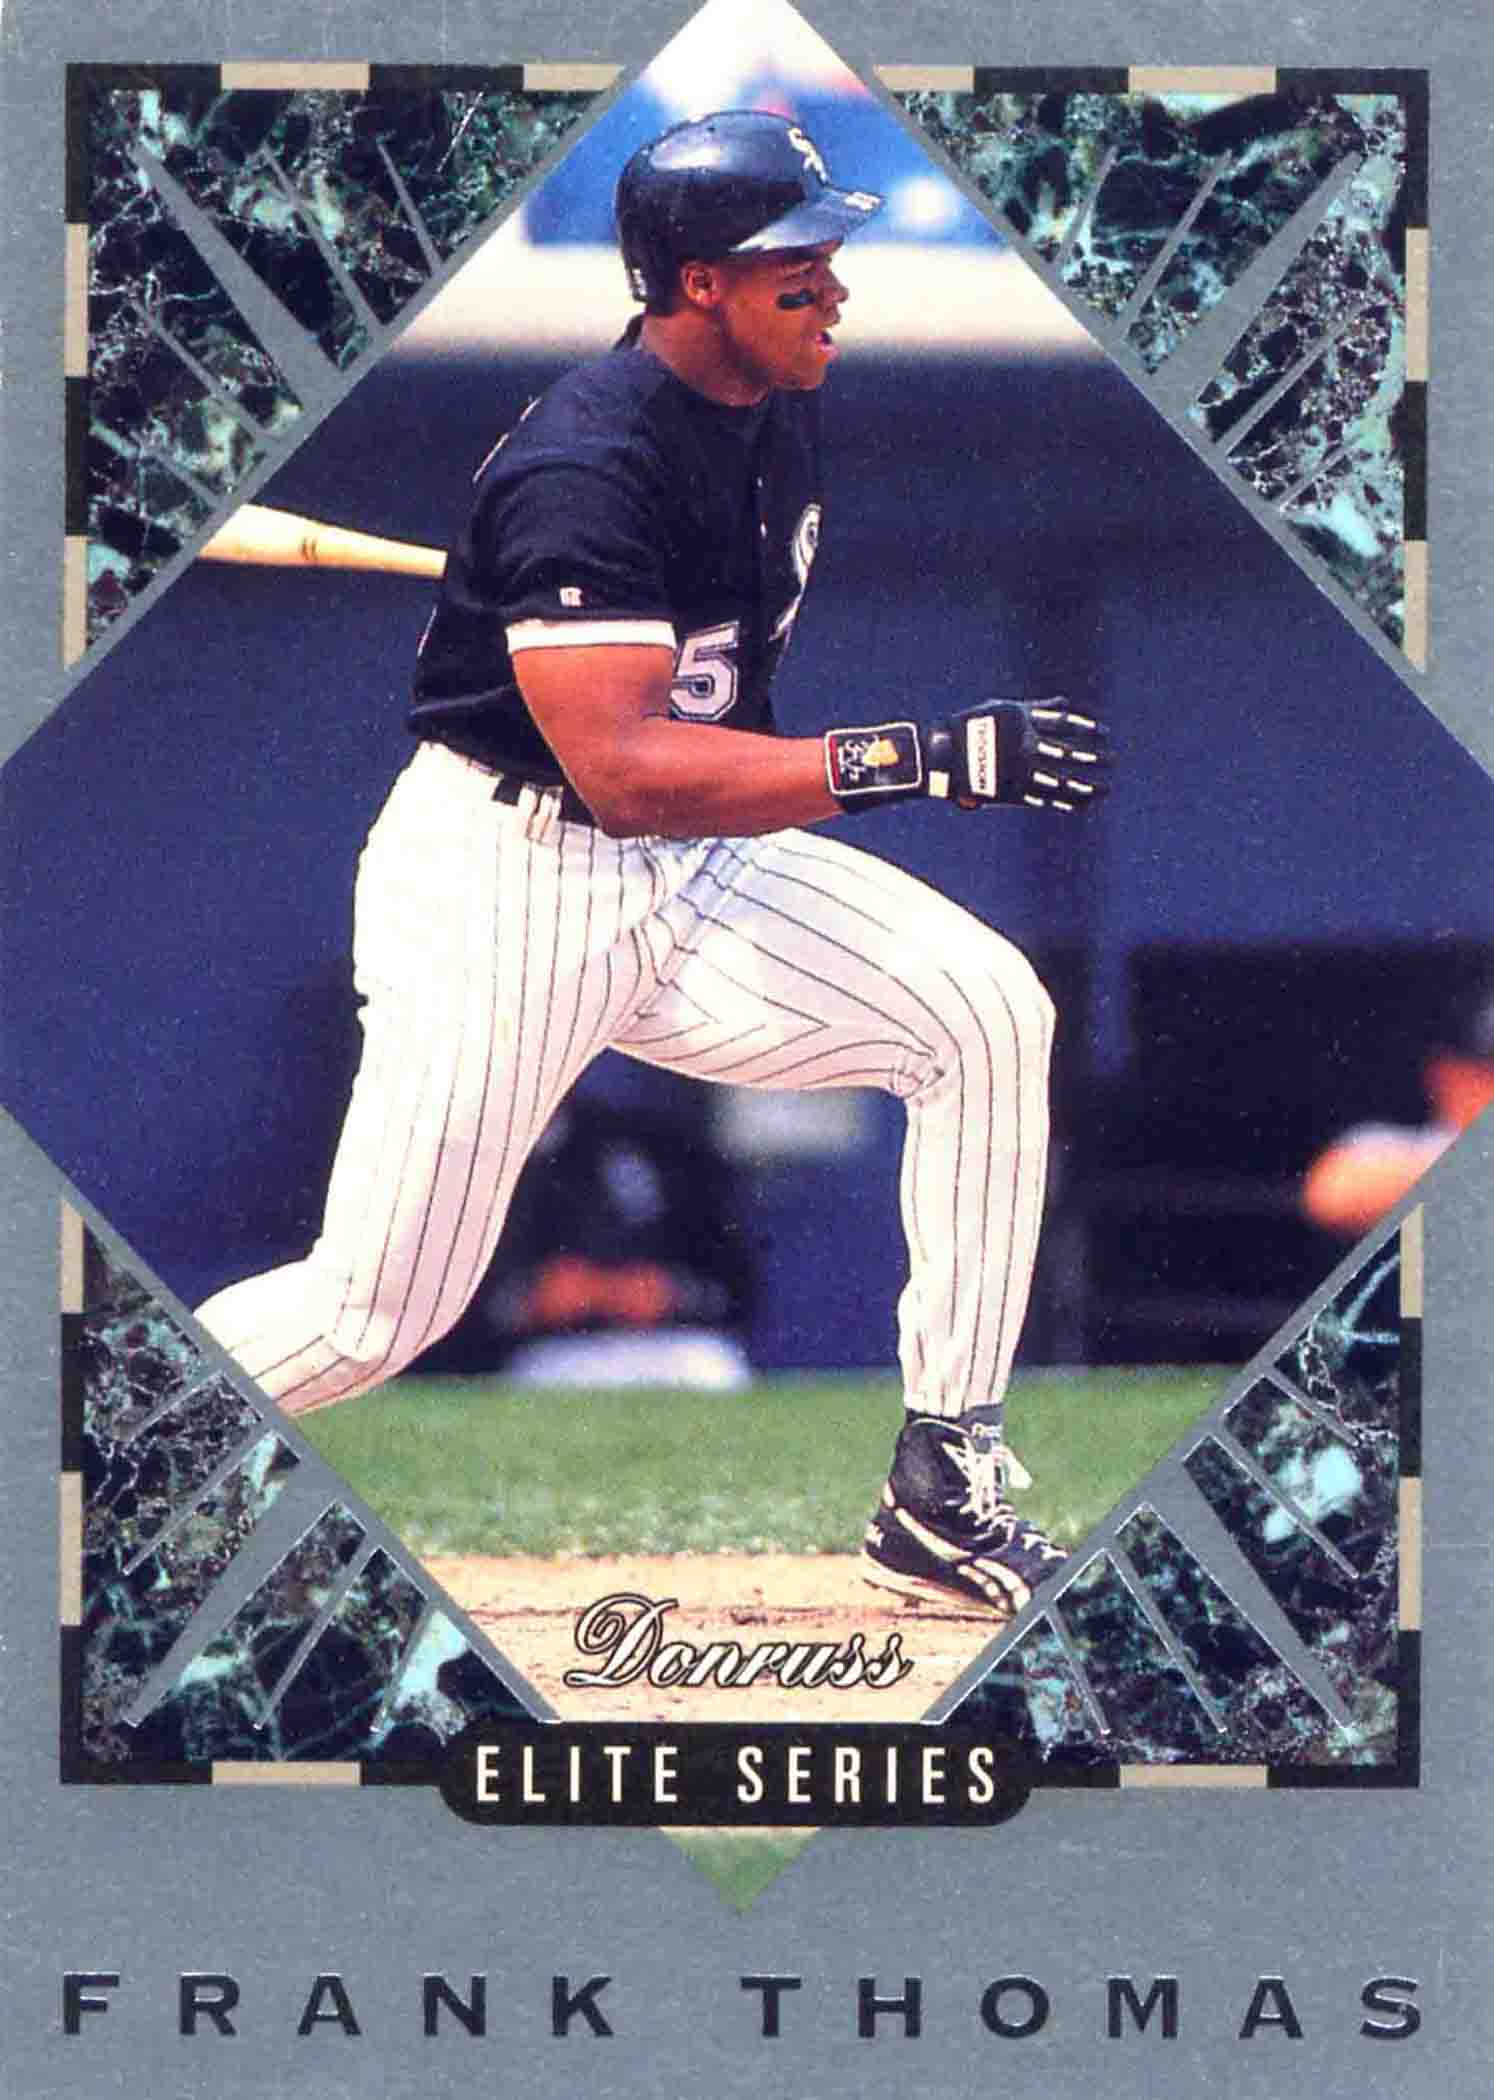 1994 Donruss Elite